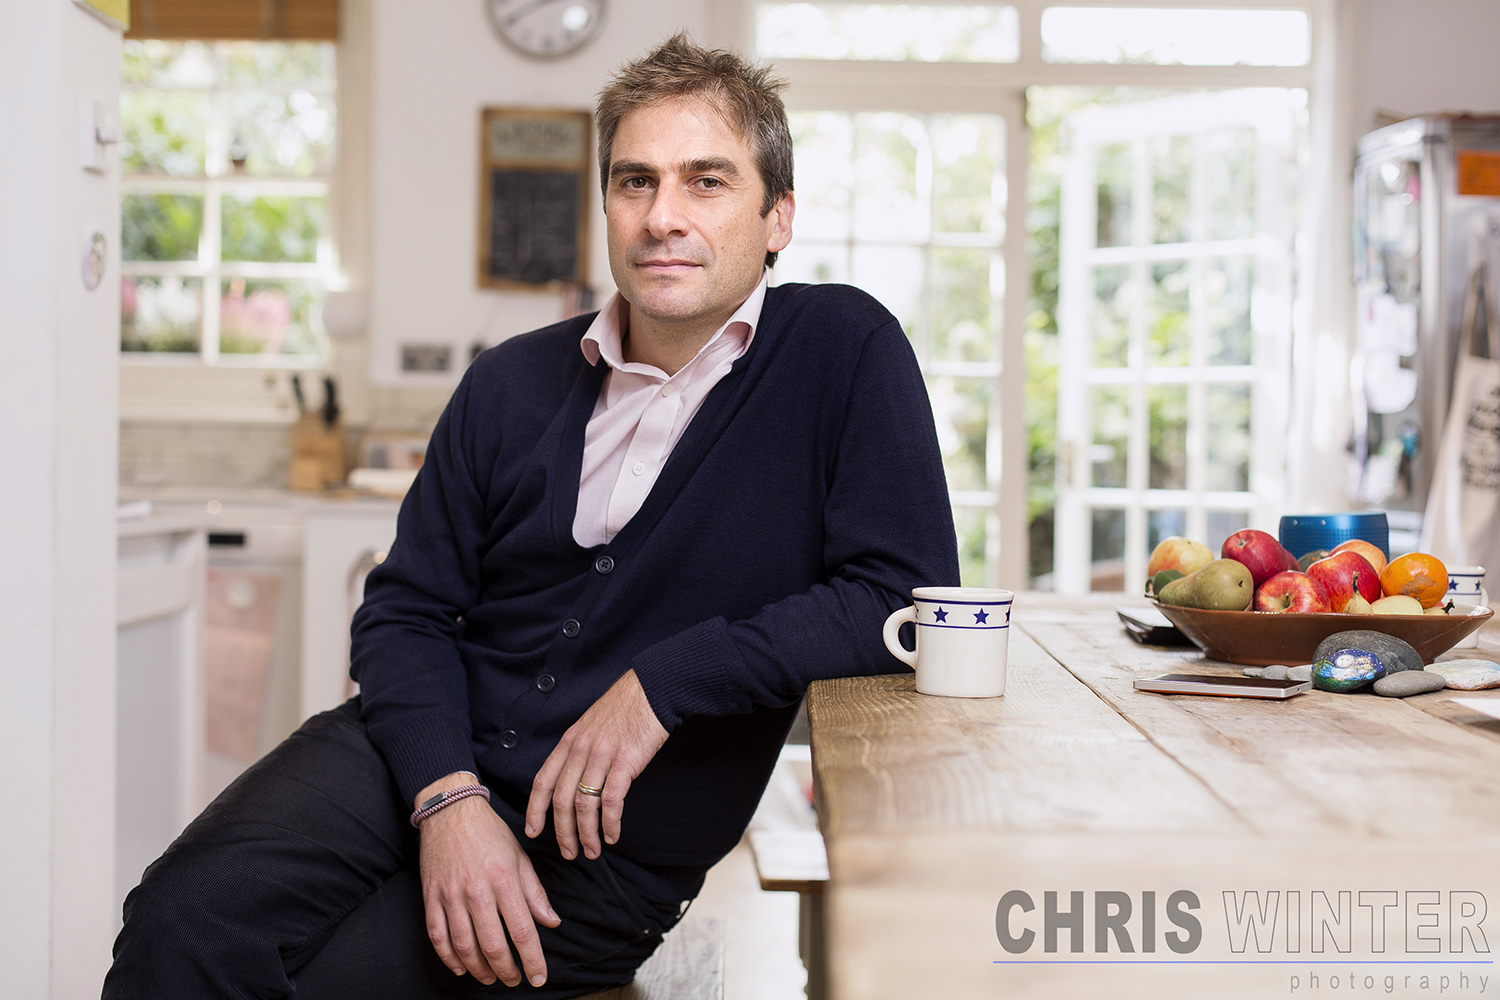 Portraits of Gerard Grech shot at his home in North London.Photo credit : Chris Winter